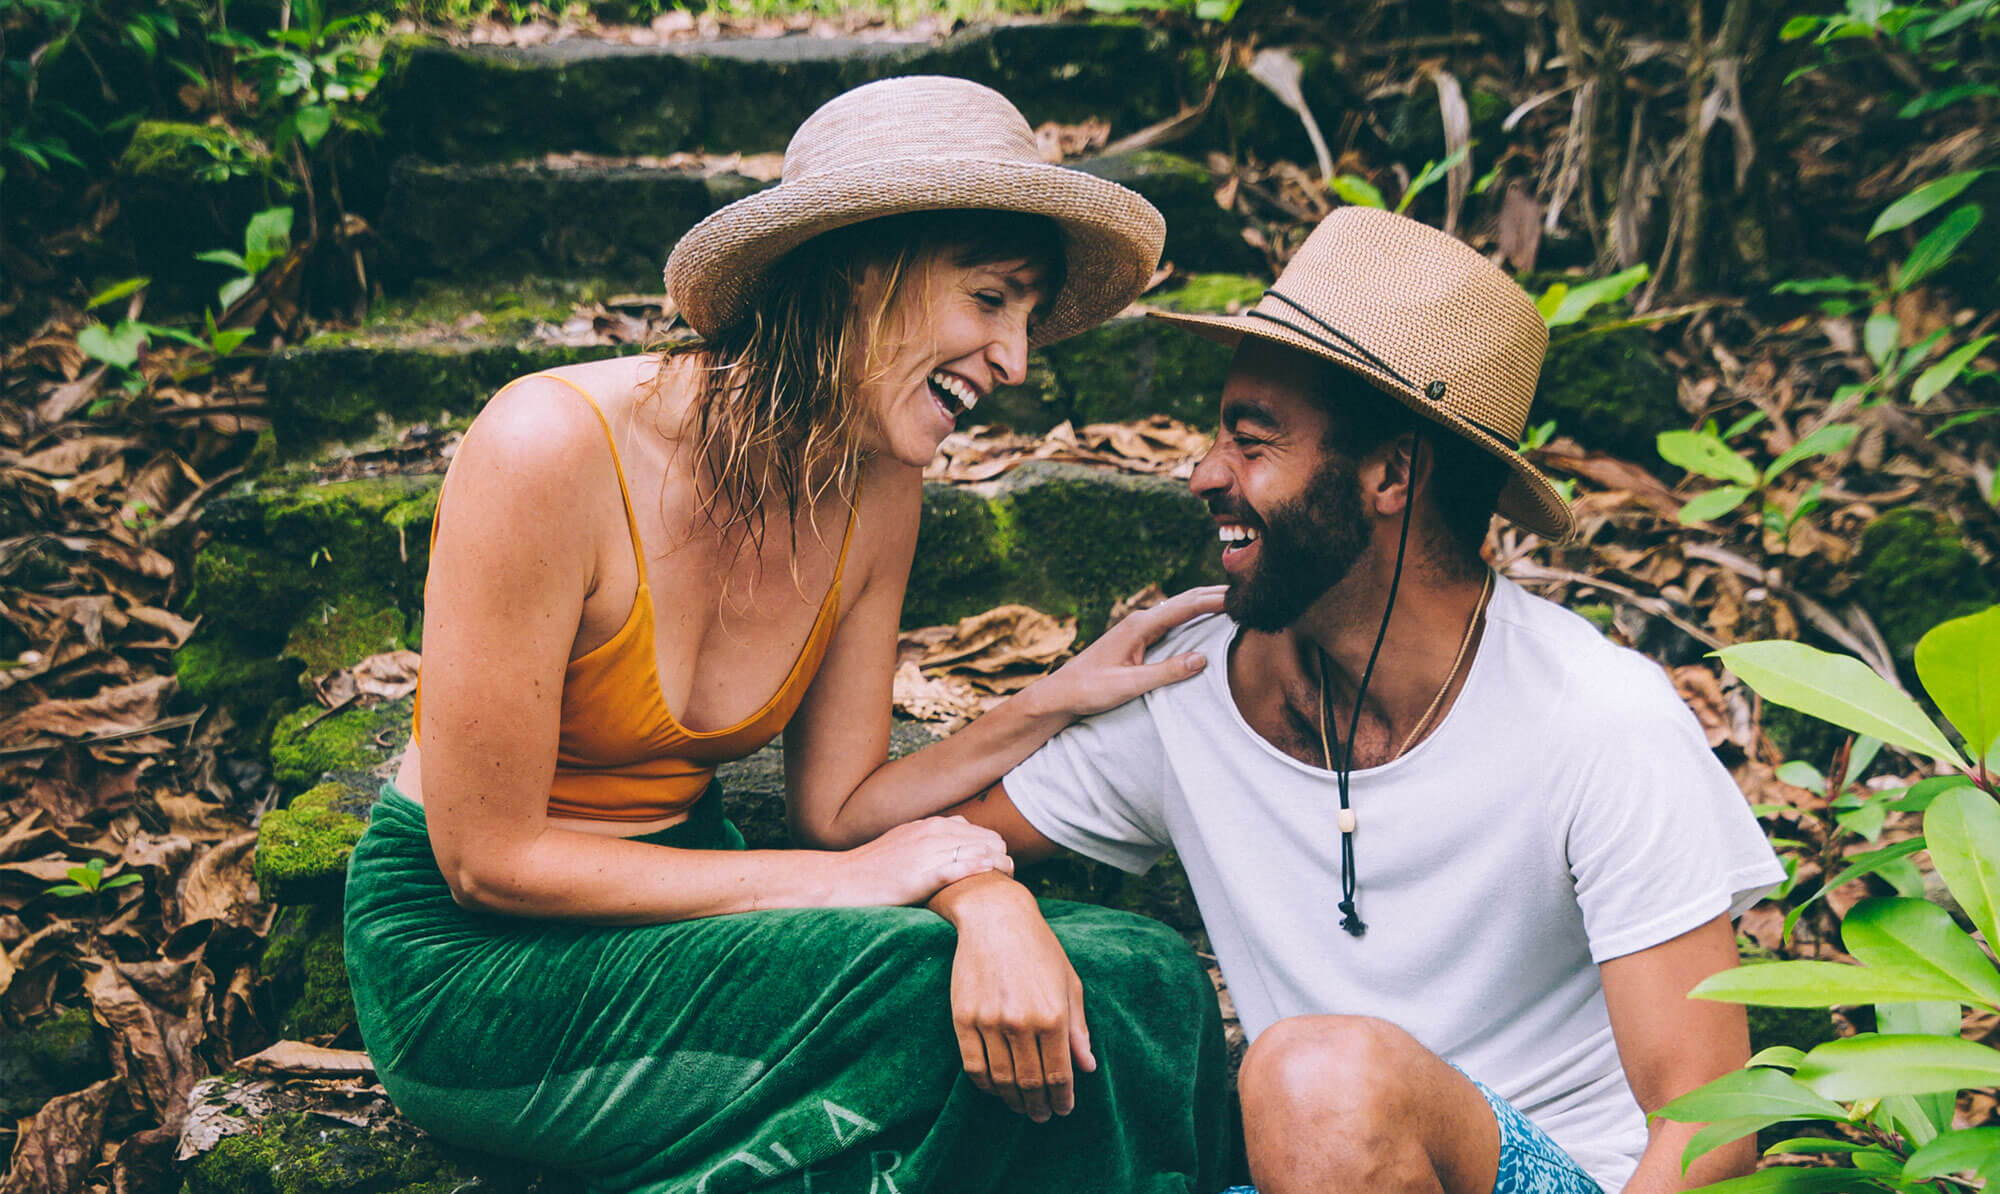 Man and woman laughing wearing sun hats